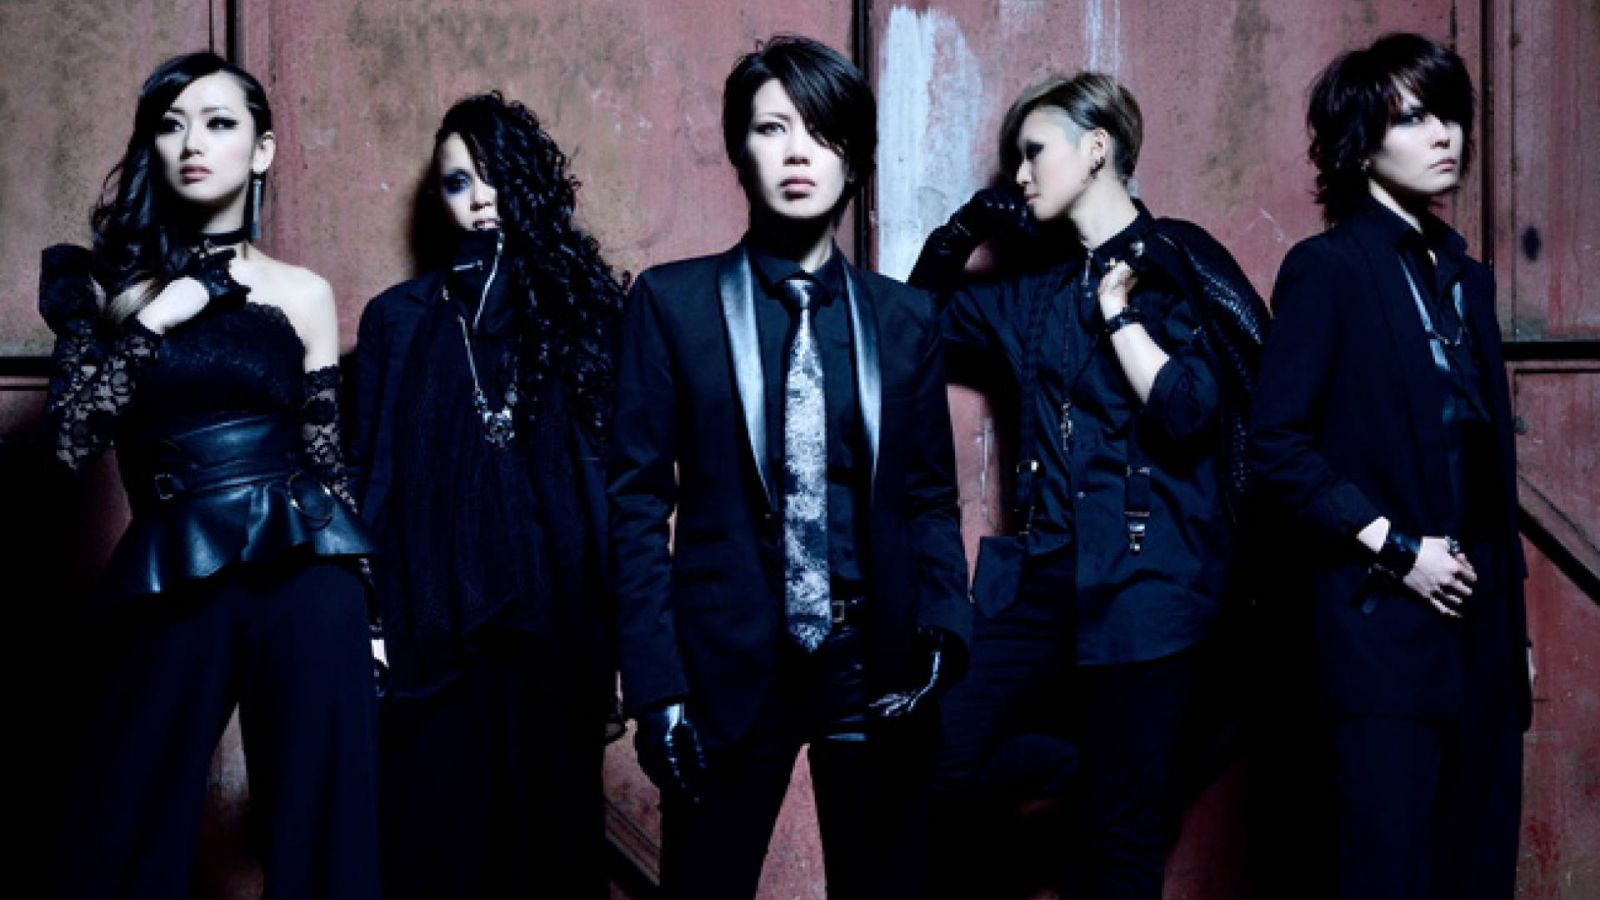 exist†trace © Monster's inc. All rights reserved.